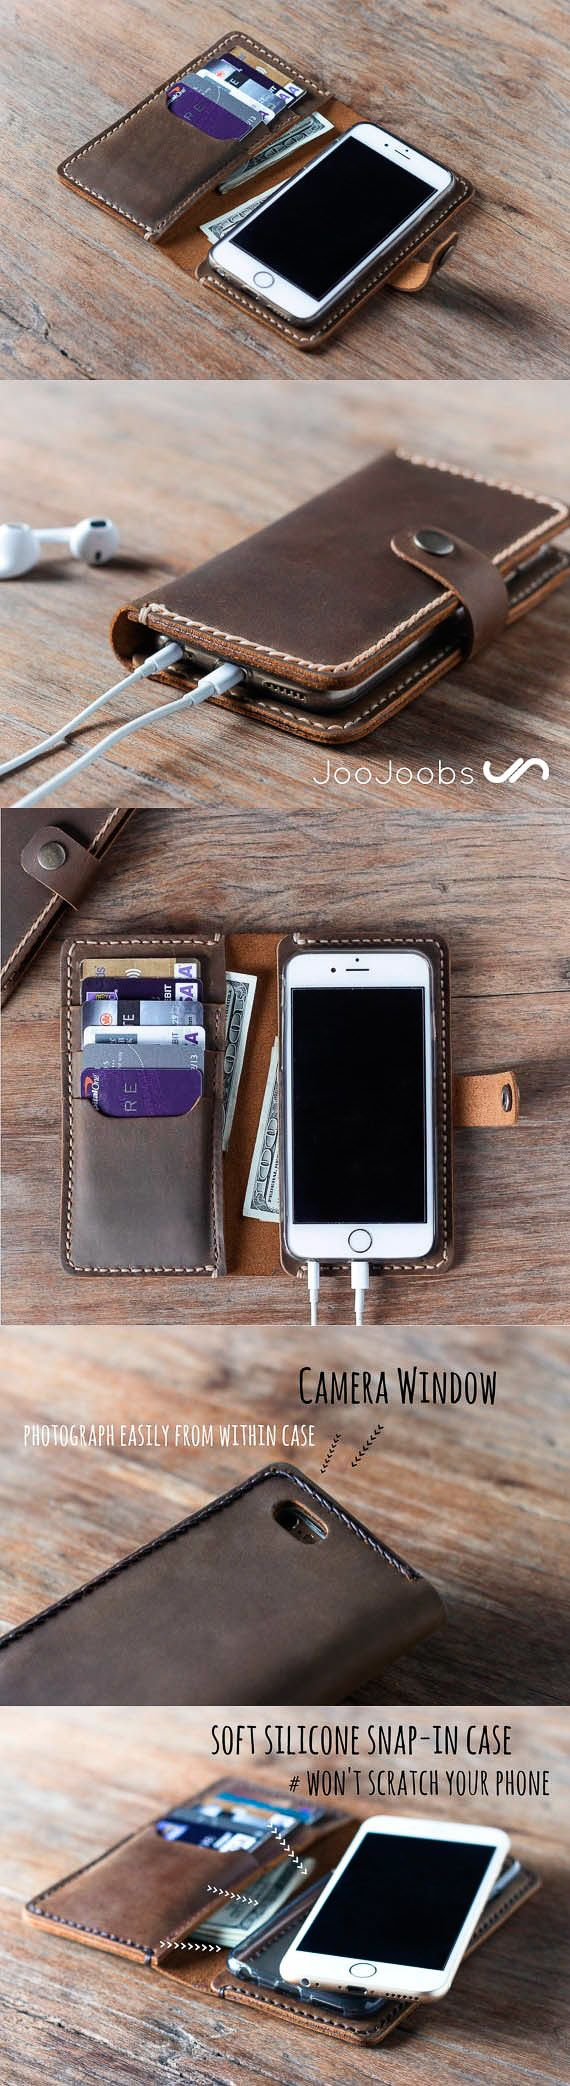 This handmade iPhone 7 wallet case is made from full grain distressed leather.  We also make it for most iPhone and Samsung smartphones.  This makes for an awesome, super unique gift idea.